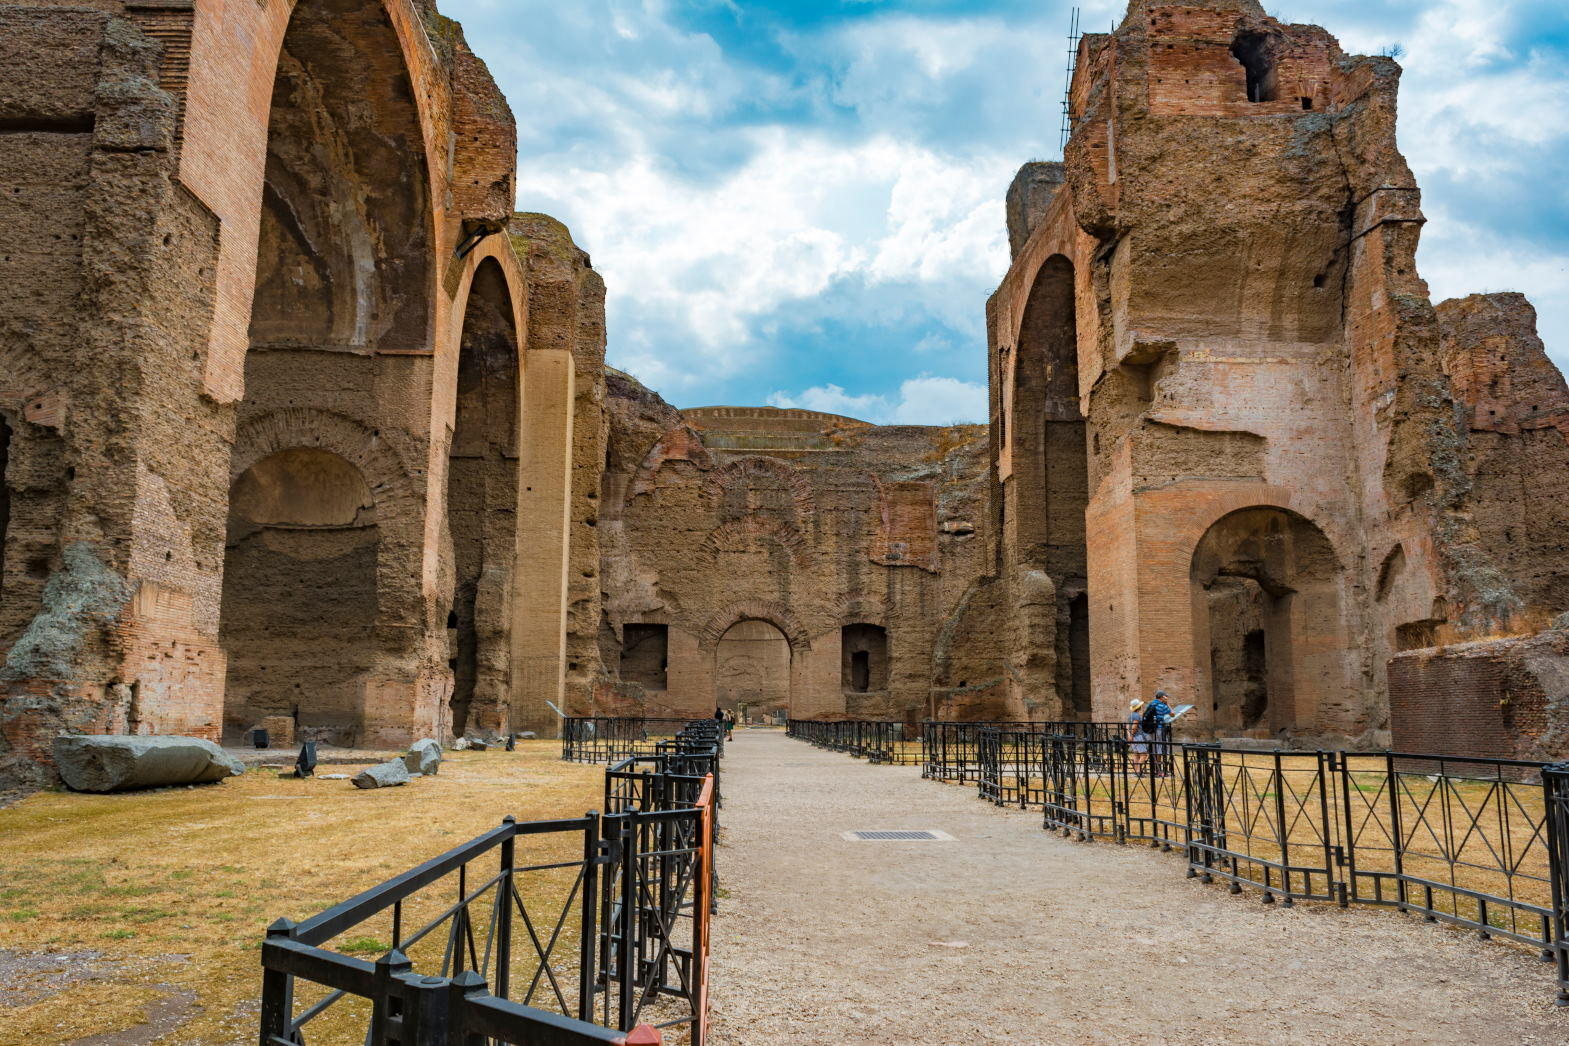 Ruins of the Baths of Caracalla (Terme di Caracalla), one of the most important baths of Rome at the time of the Roman Empire.